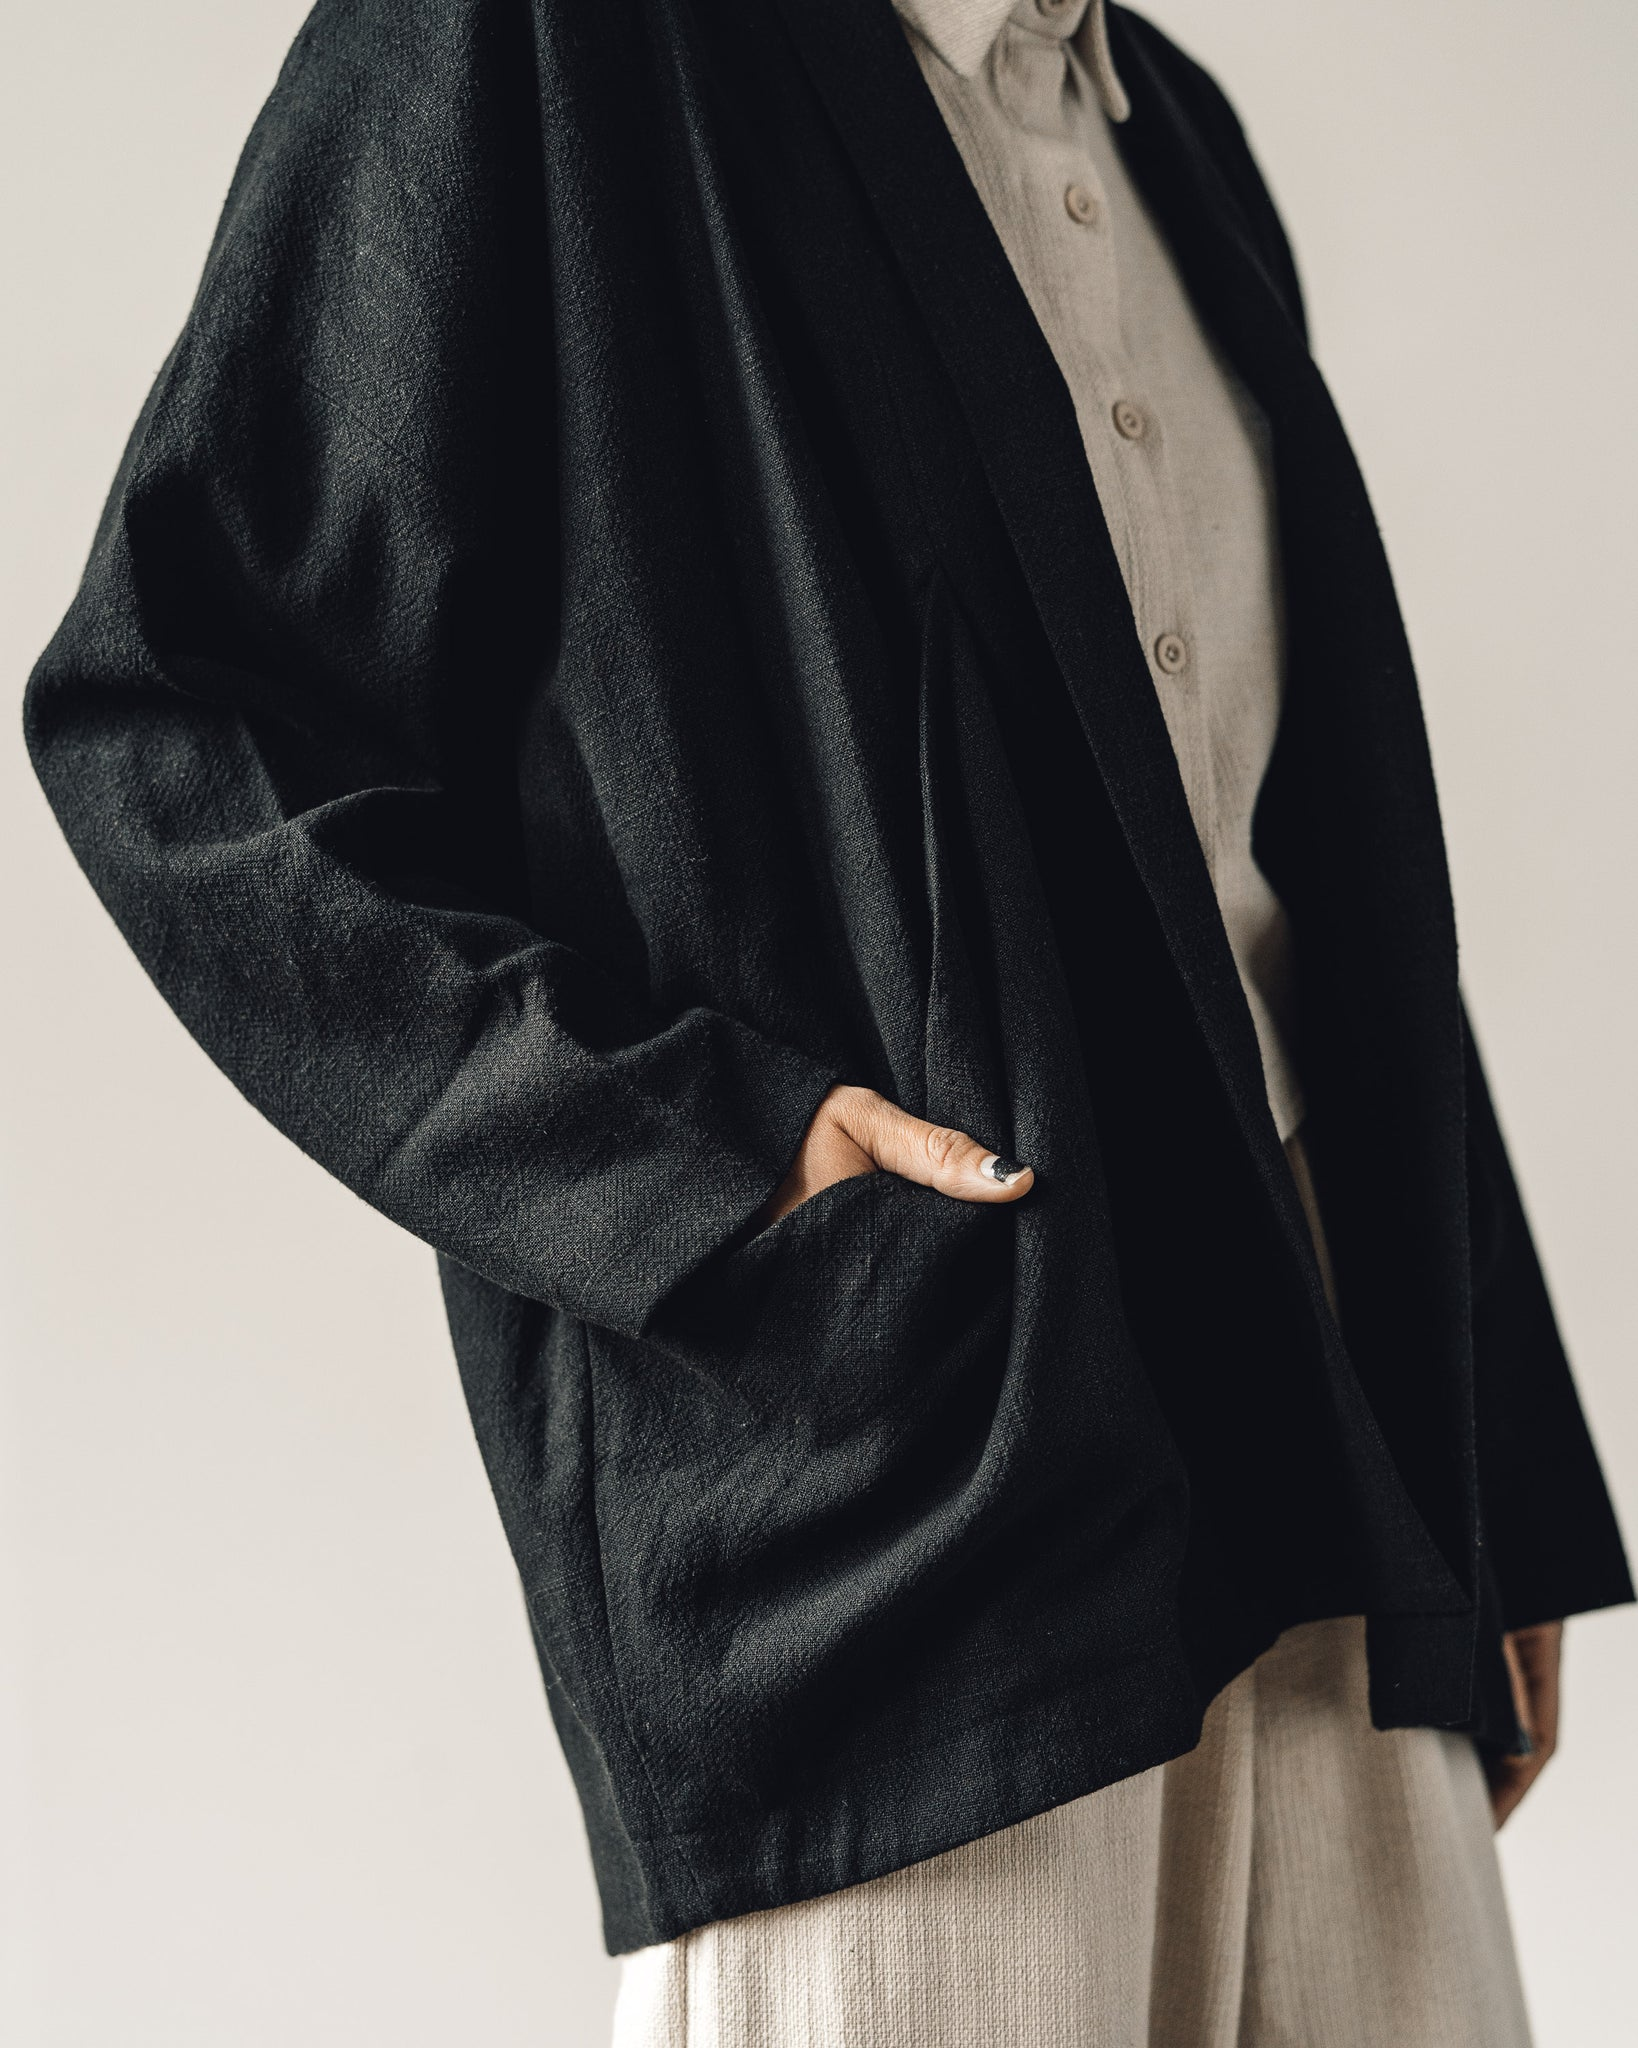 7115 Signature Linen Sumo Jacket, Black